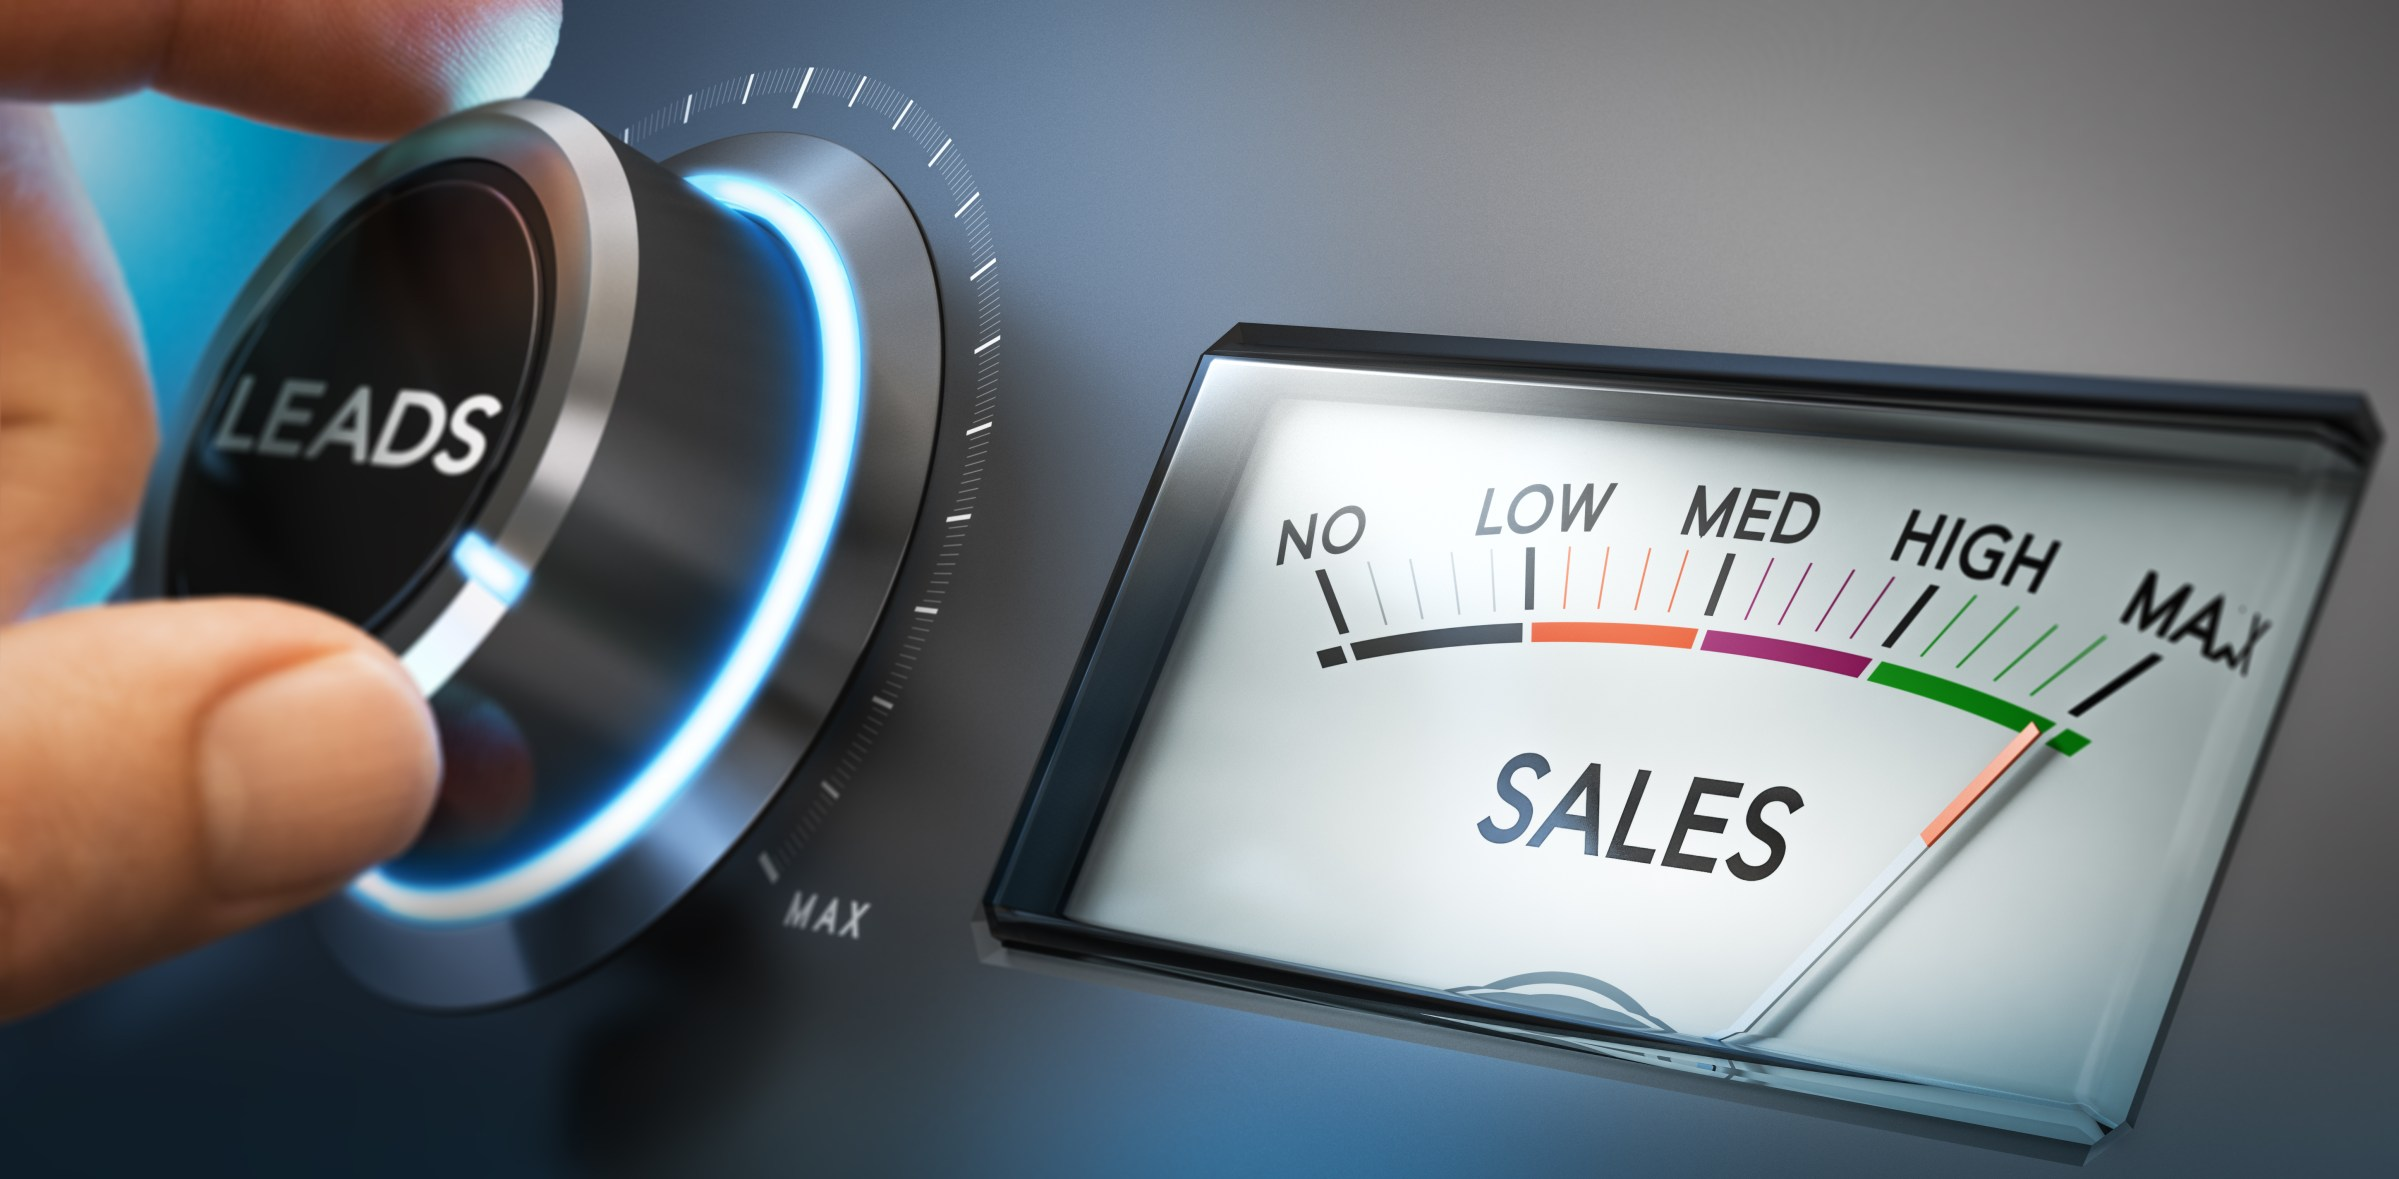 Do You Need More Referrals in Your Sales Pipeline?